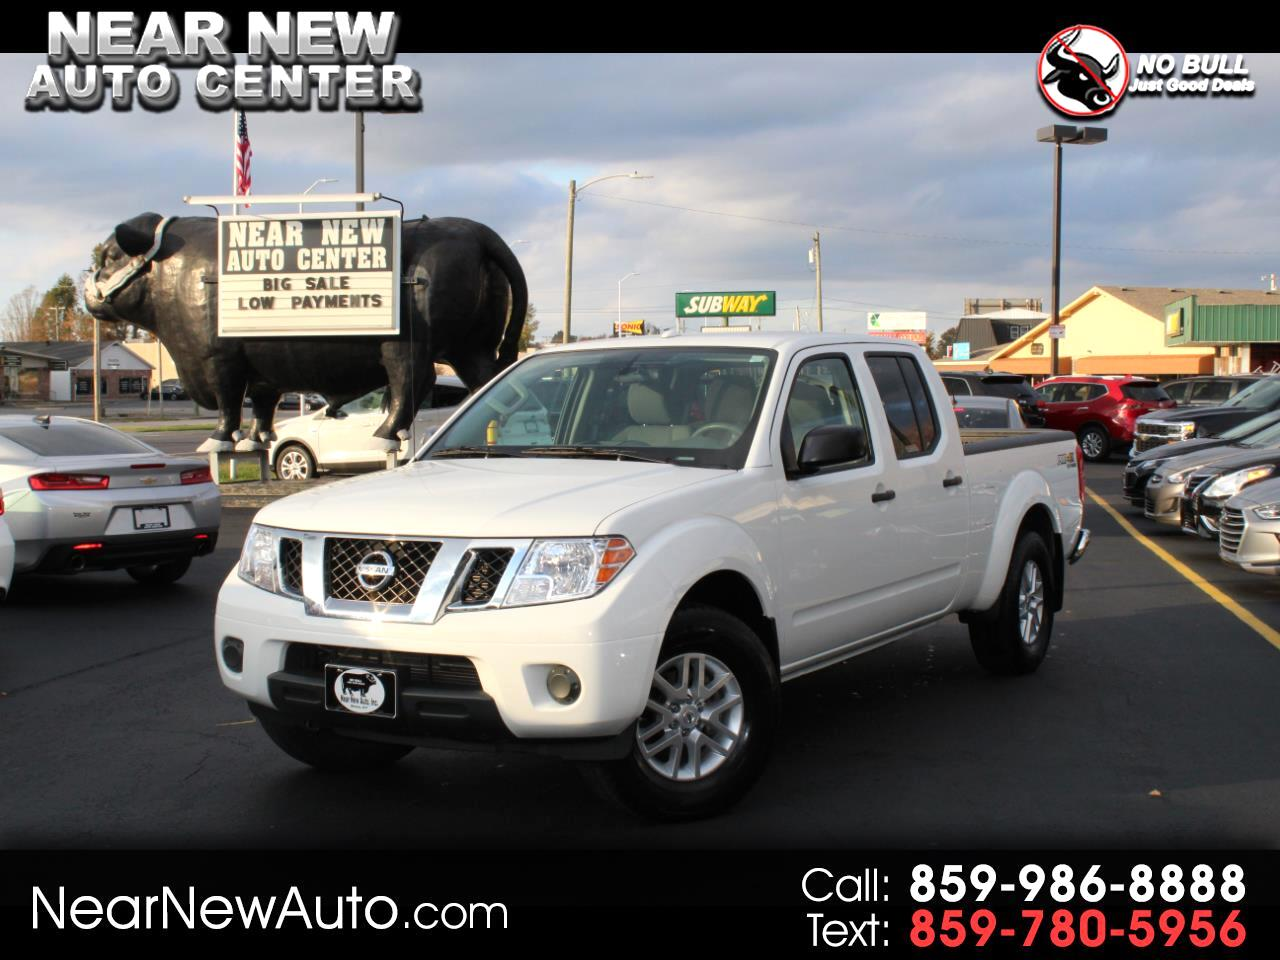 2018 Nissan Frontier Crew Cab 4x4 SV V6 Auto Long Bed